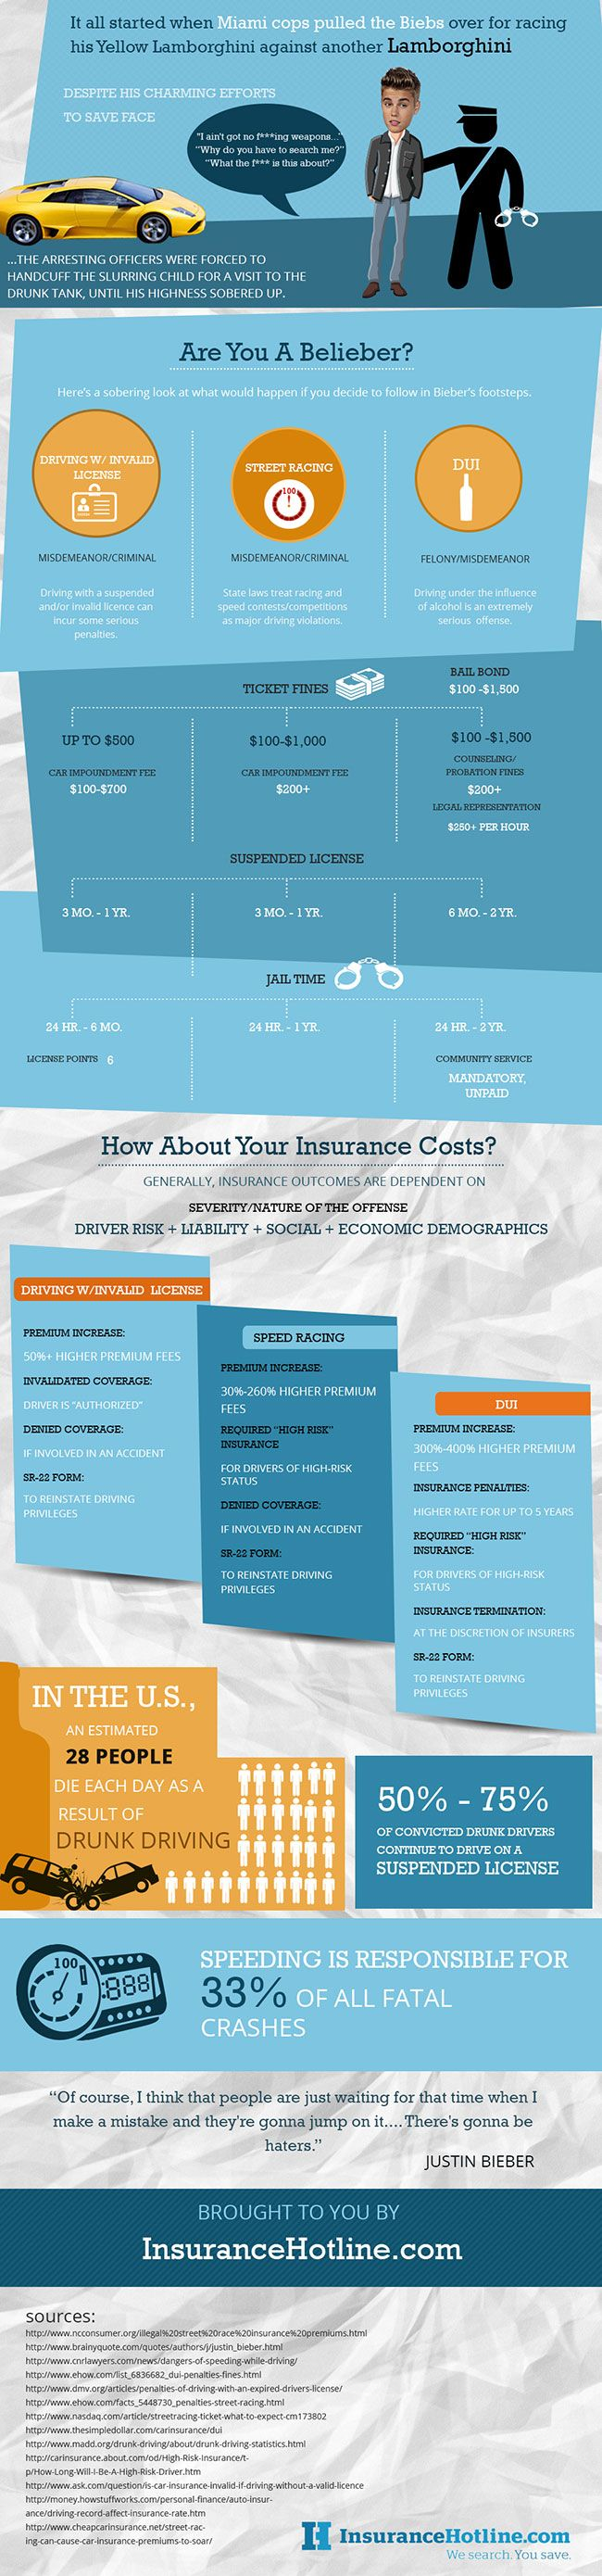 http://www.insurancehotline.com/how-justin-biebers-driving-record-will-impact-his-insurance-rates-infographic/  How Justin Bieber's Driving Record Will Impact His Insurance Rates! [INFOGRAPHIC]